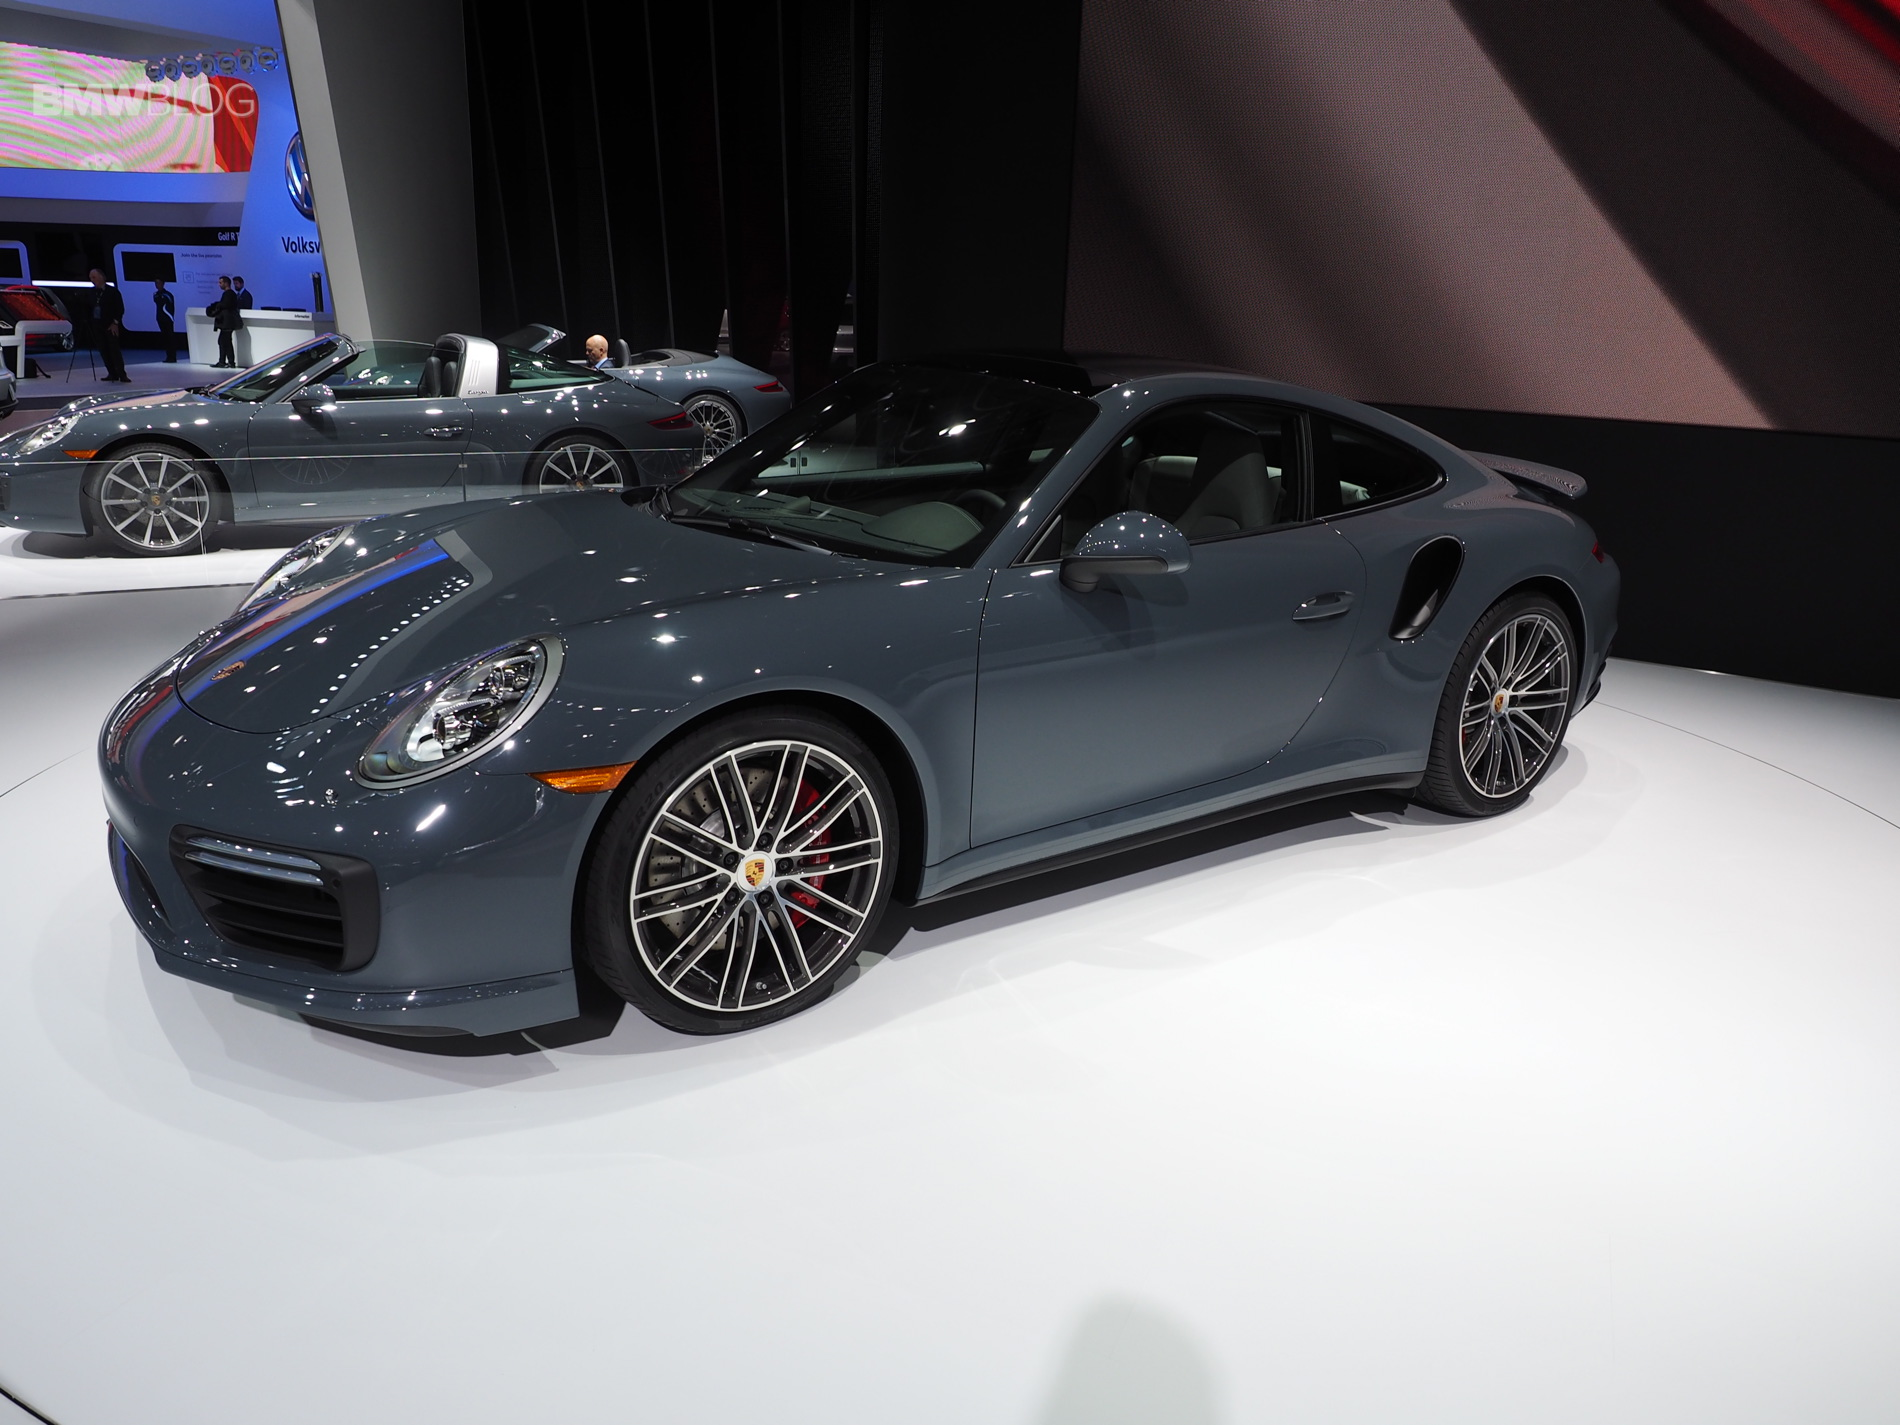 Porsche Unveils New Porsche 911 And 911 Turbo At 2016